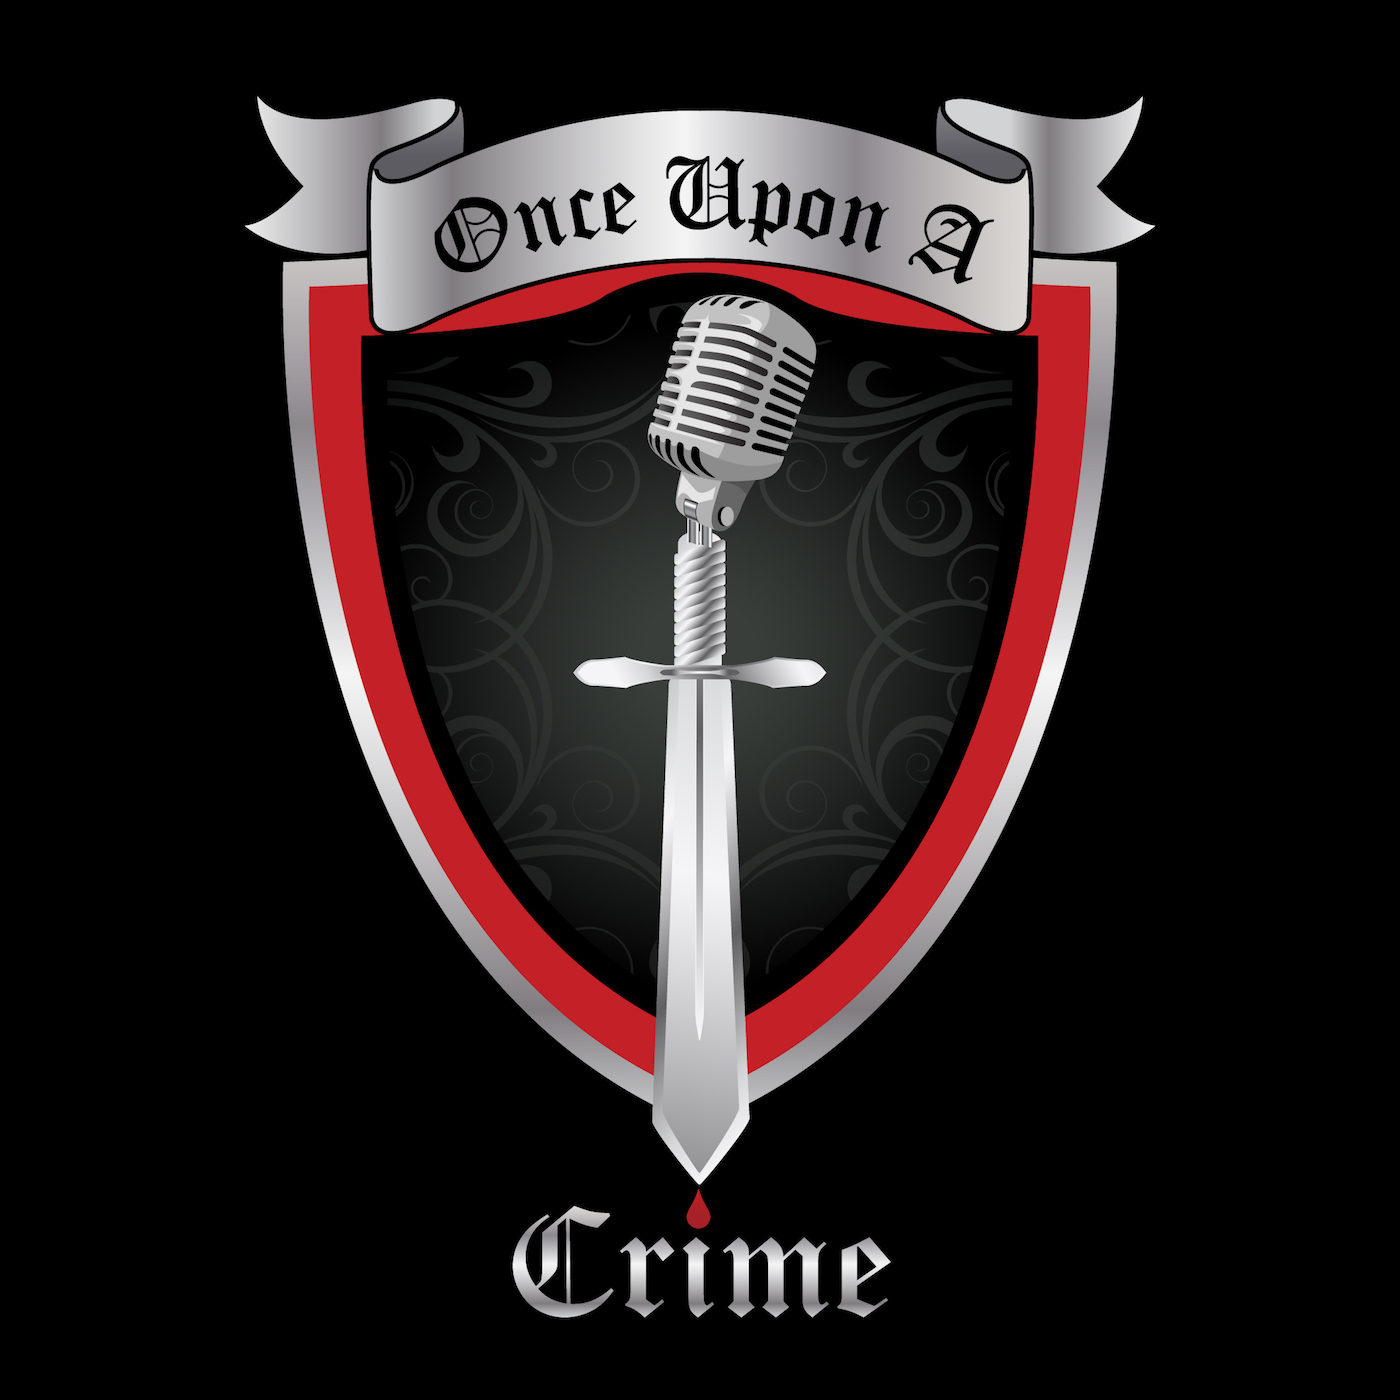 Once_Upon_a_Crime_iTunes_copy.jpg